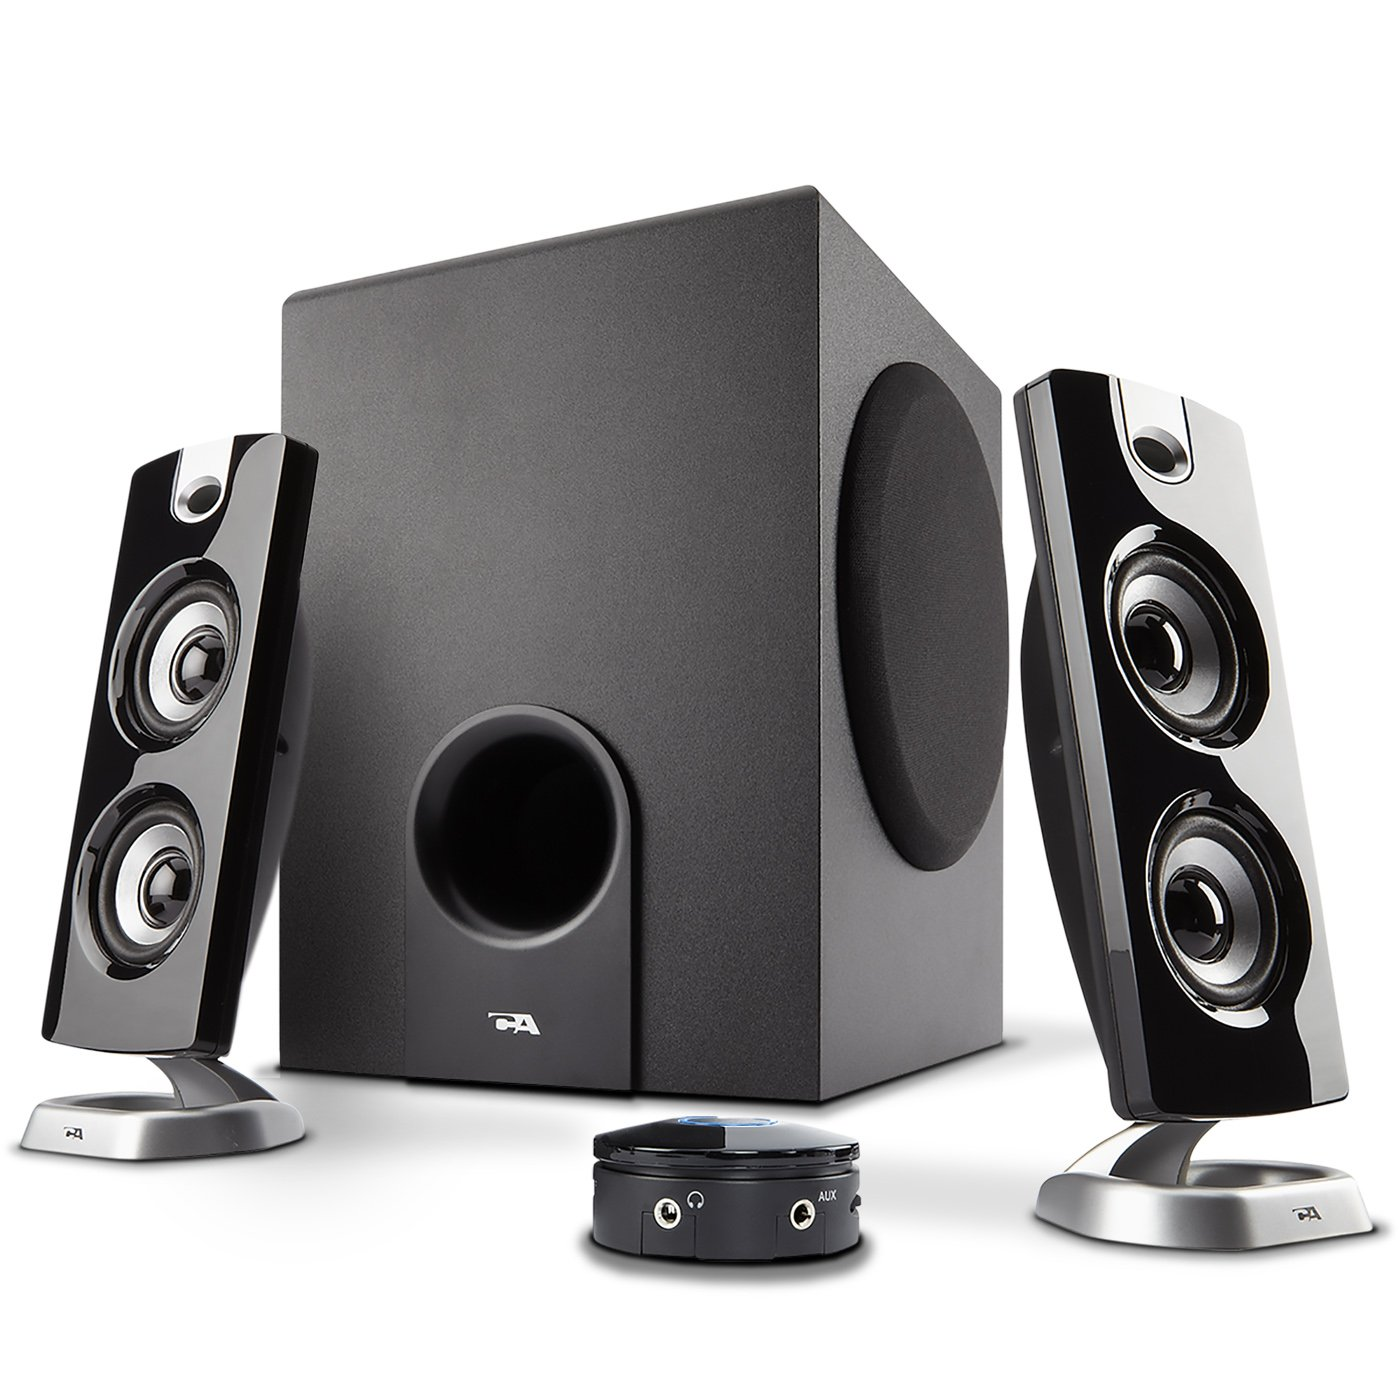 Cyber Acoustics CA-3602a 62W Desktop Computer Speaker with Subwoofer - Perfect 2.1 Gaming and Multimedia PC speakers